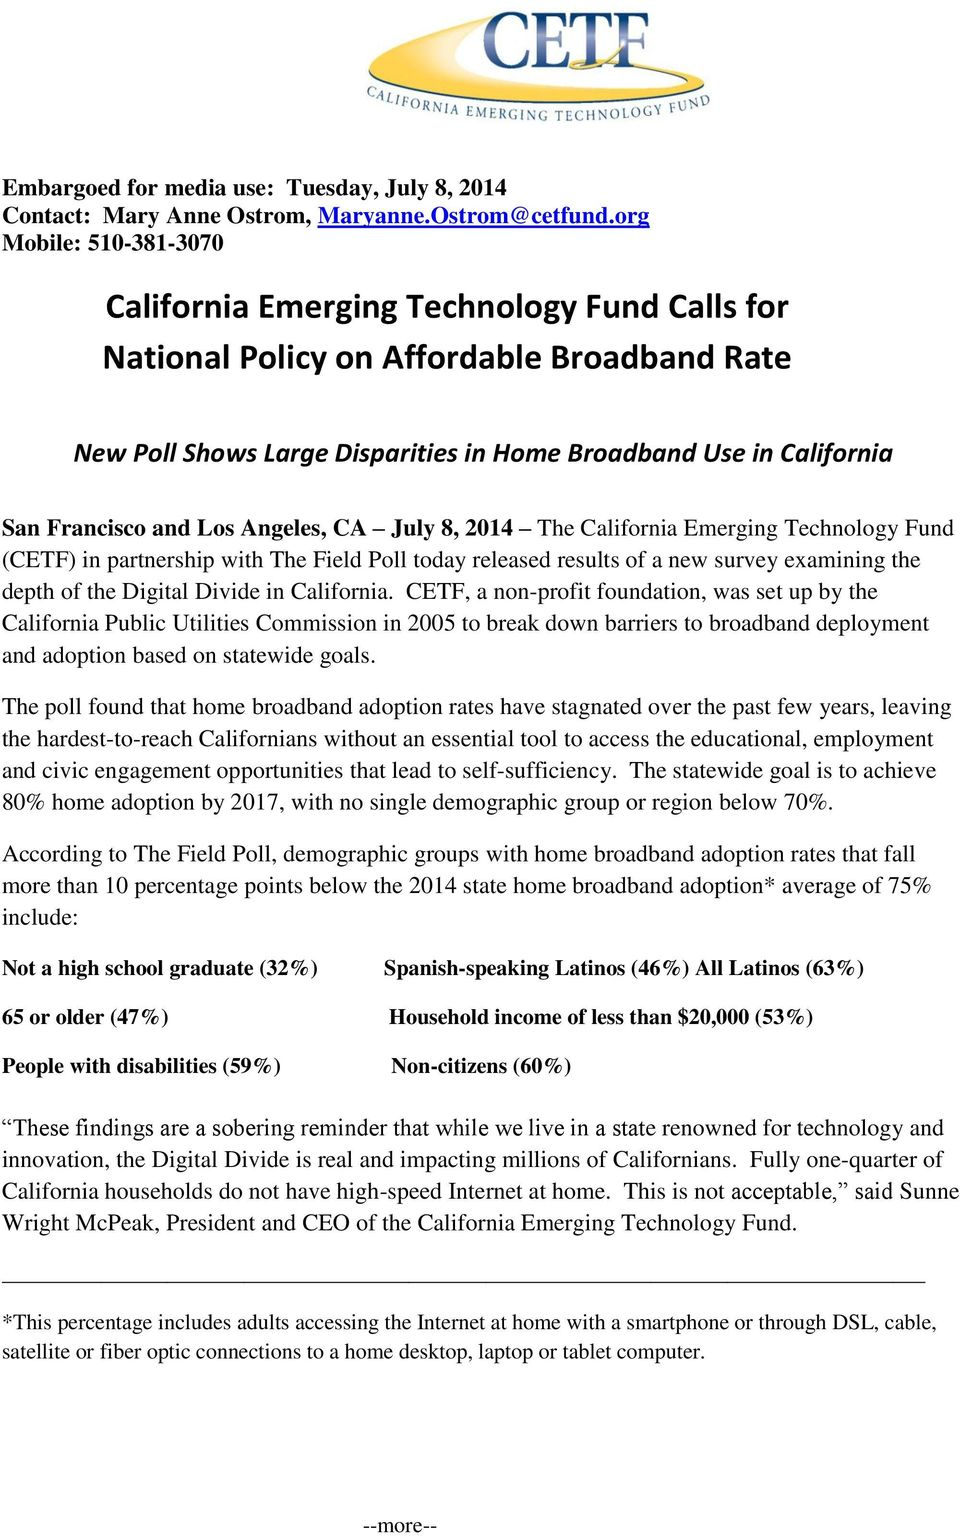 and Los Angeles, CA July 8, 2014 The California Emerging Technology Fund (CETF) in partnership with today released results of a new survey examining the depth of the Digital Divide in California.